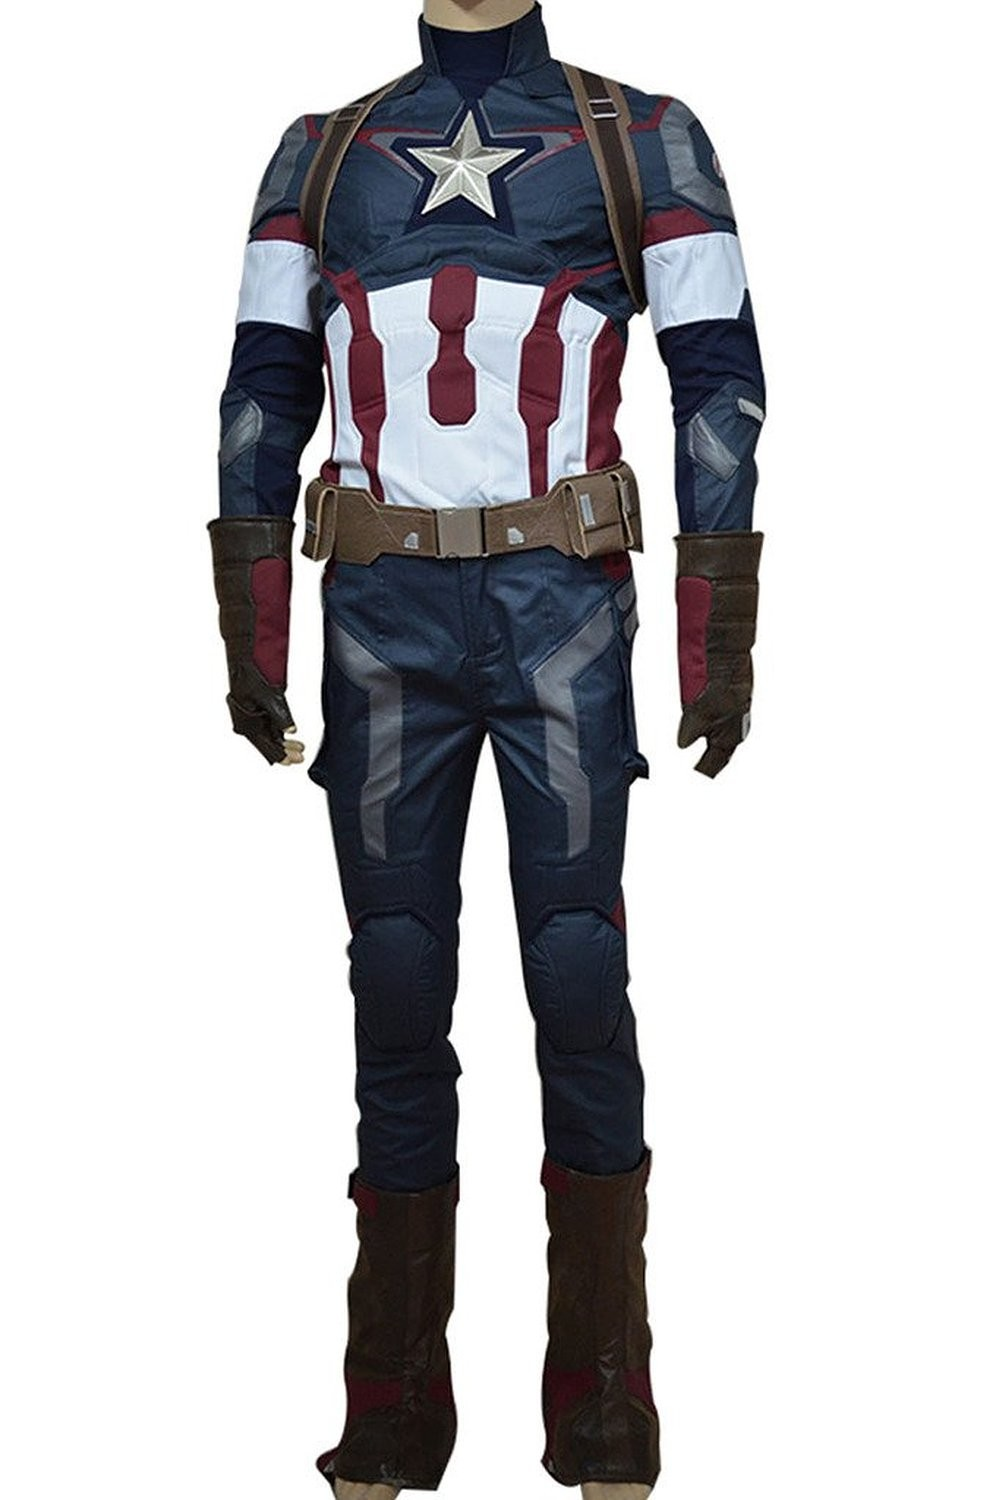 Avengers Age of Ultron Captain America 3 Steve Rogers Cosplay Costume Battle Uniform